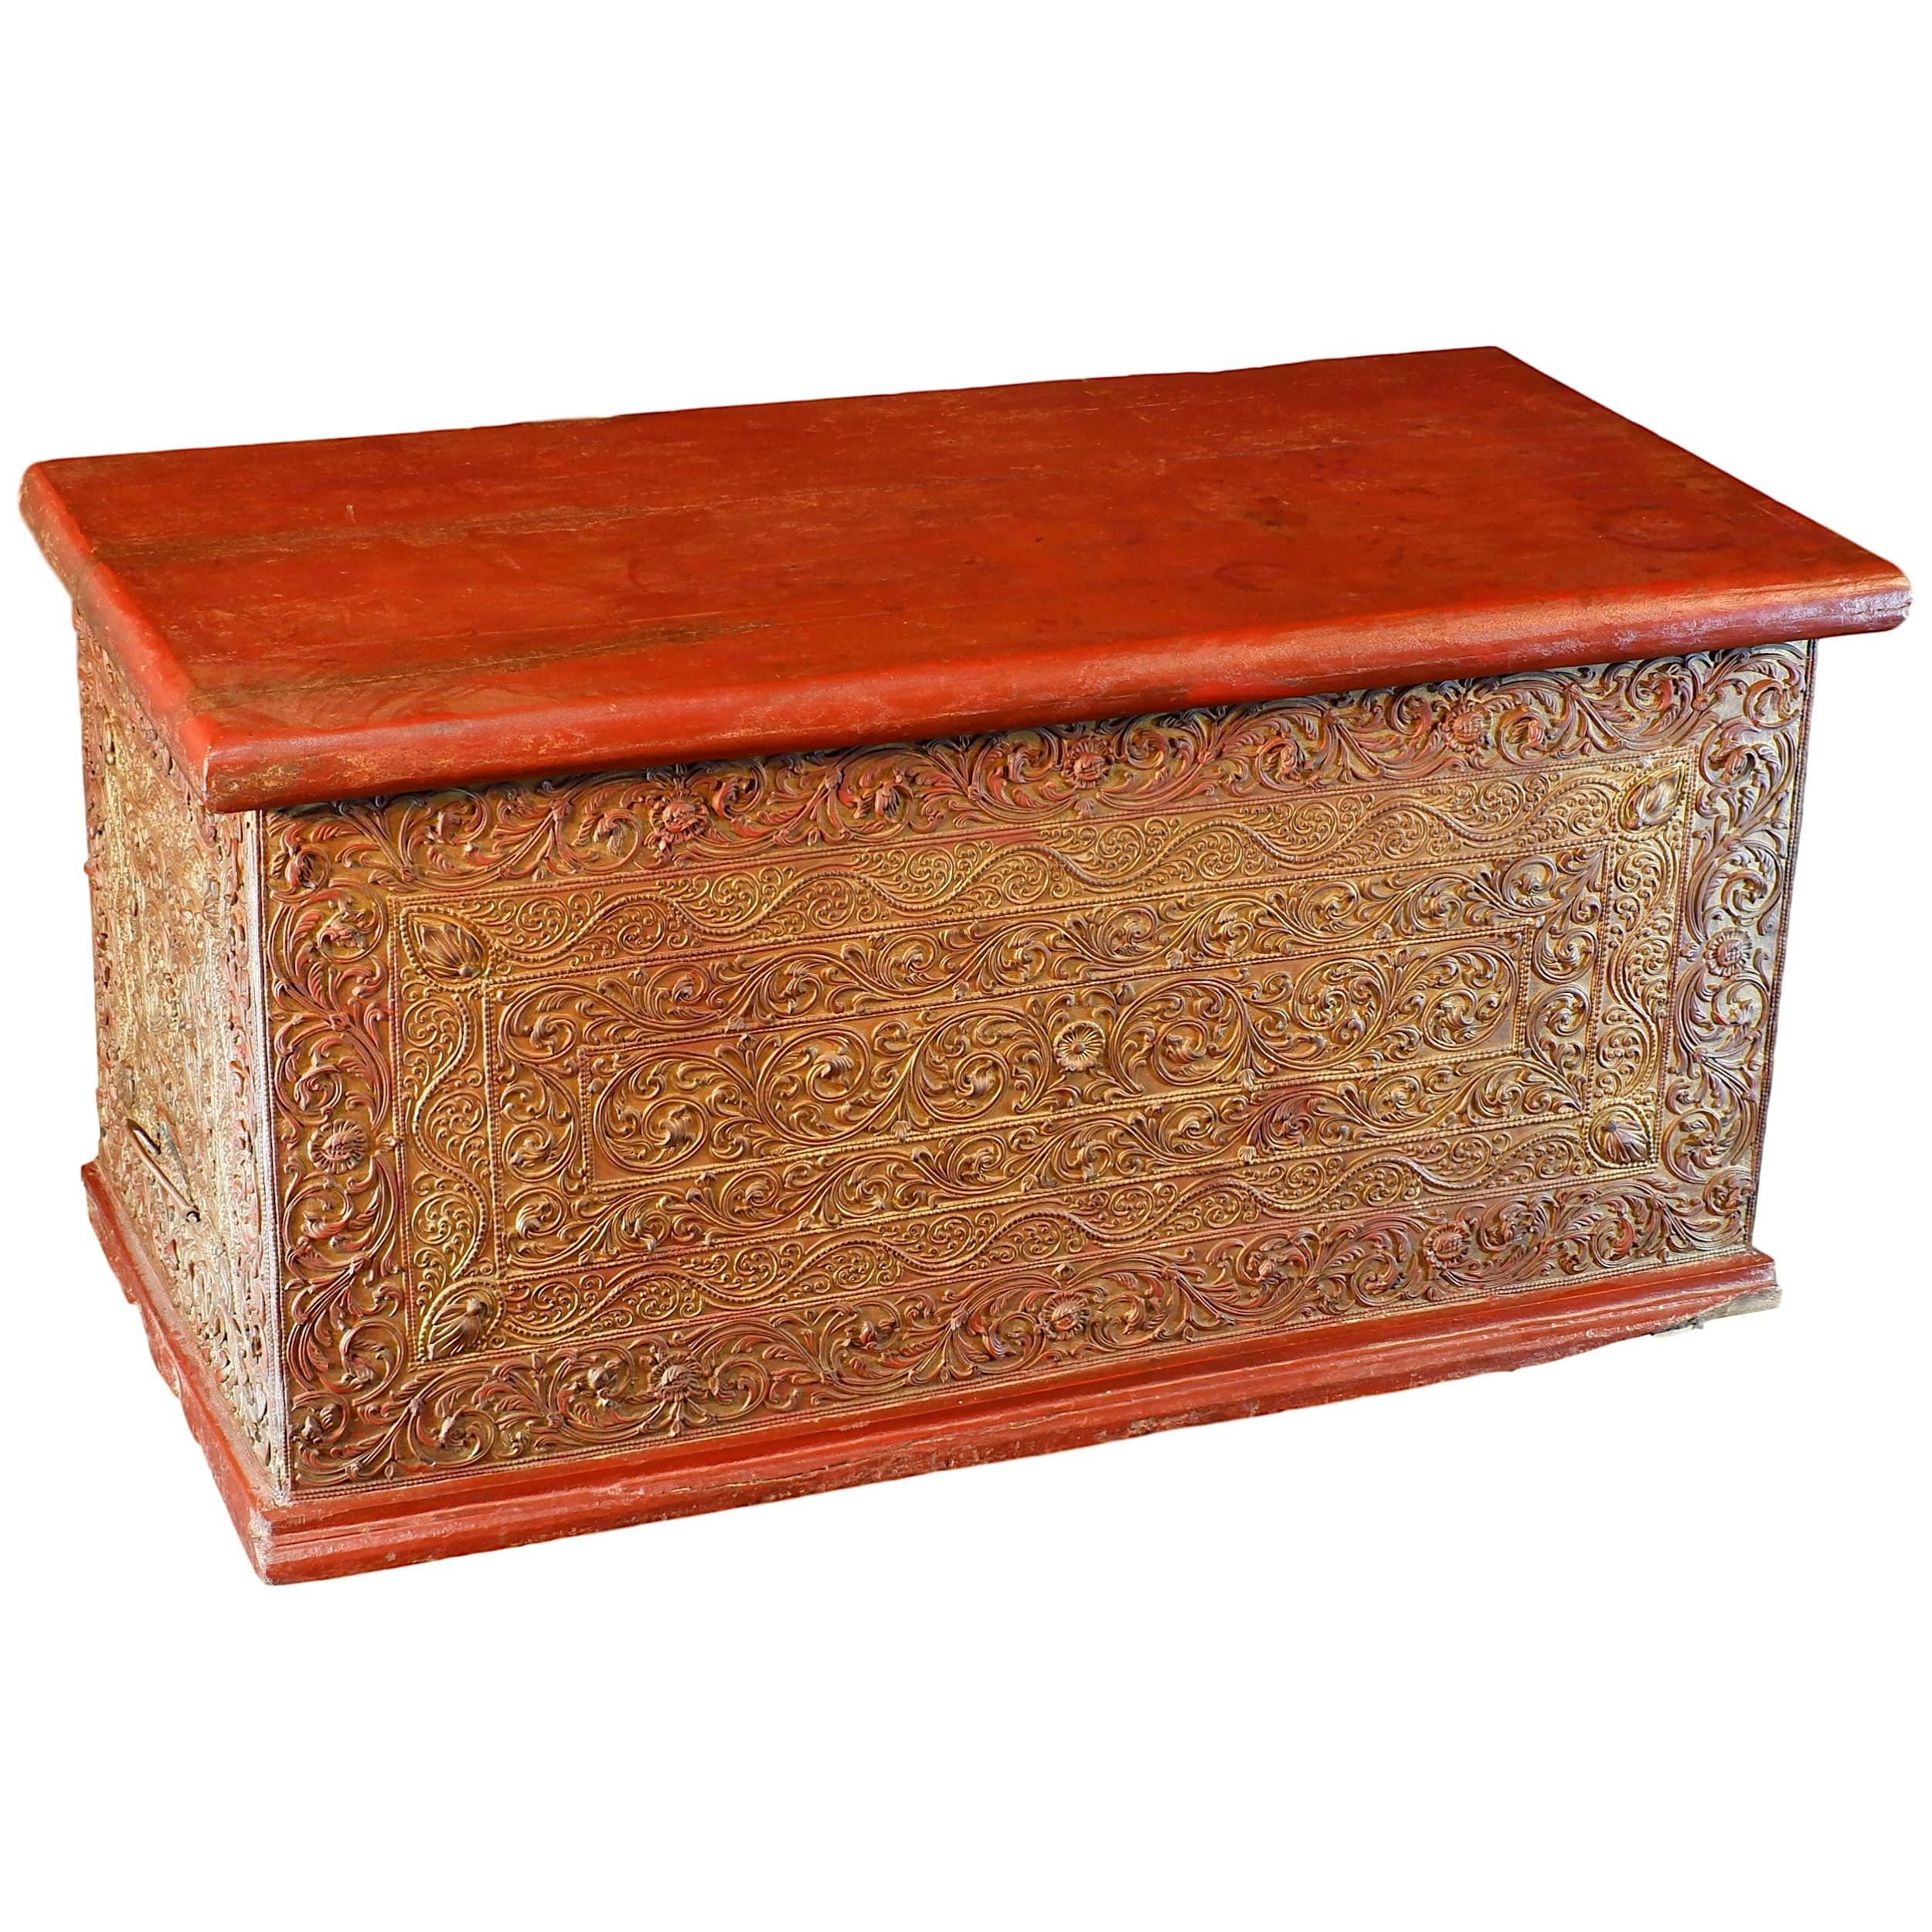 'Burmese Finely Carved and Lacquered Wood Mandalay Chest Early 20th Century'